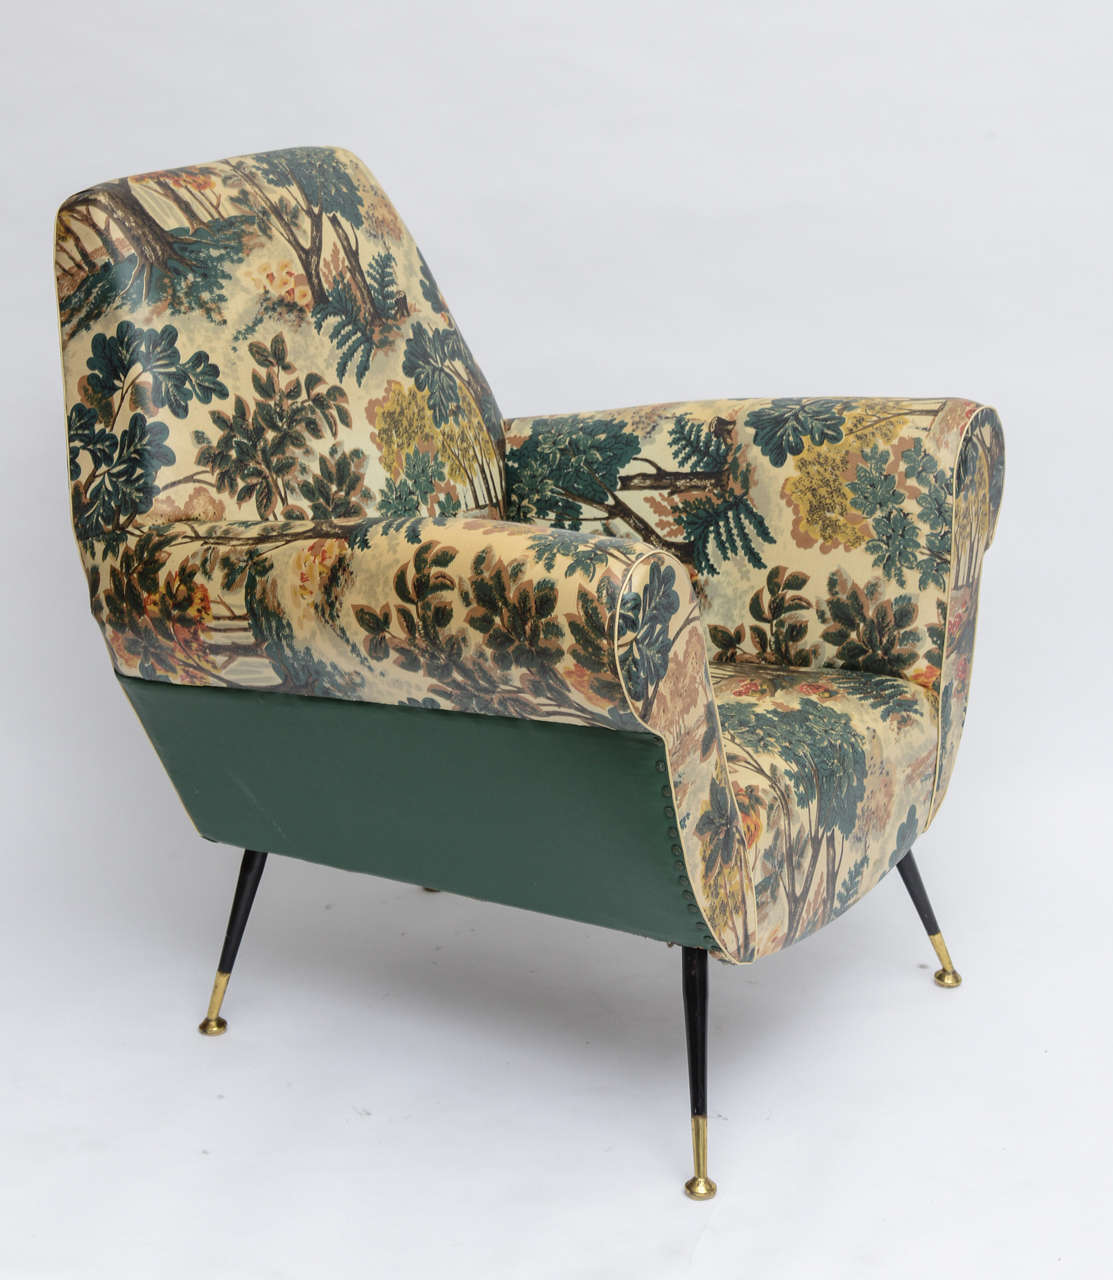 50's Italian Armchair with Original Upholstery (2 Available) 4